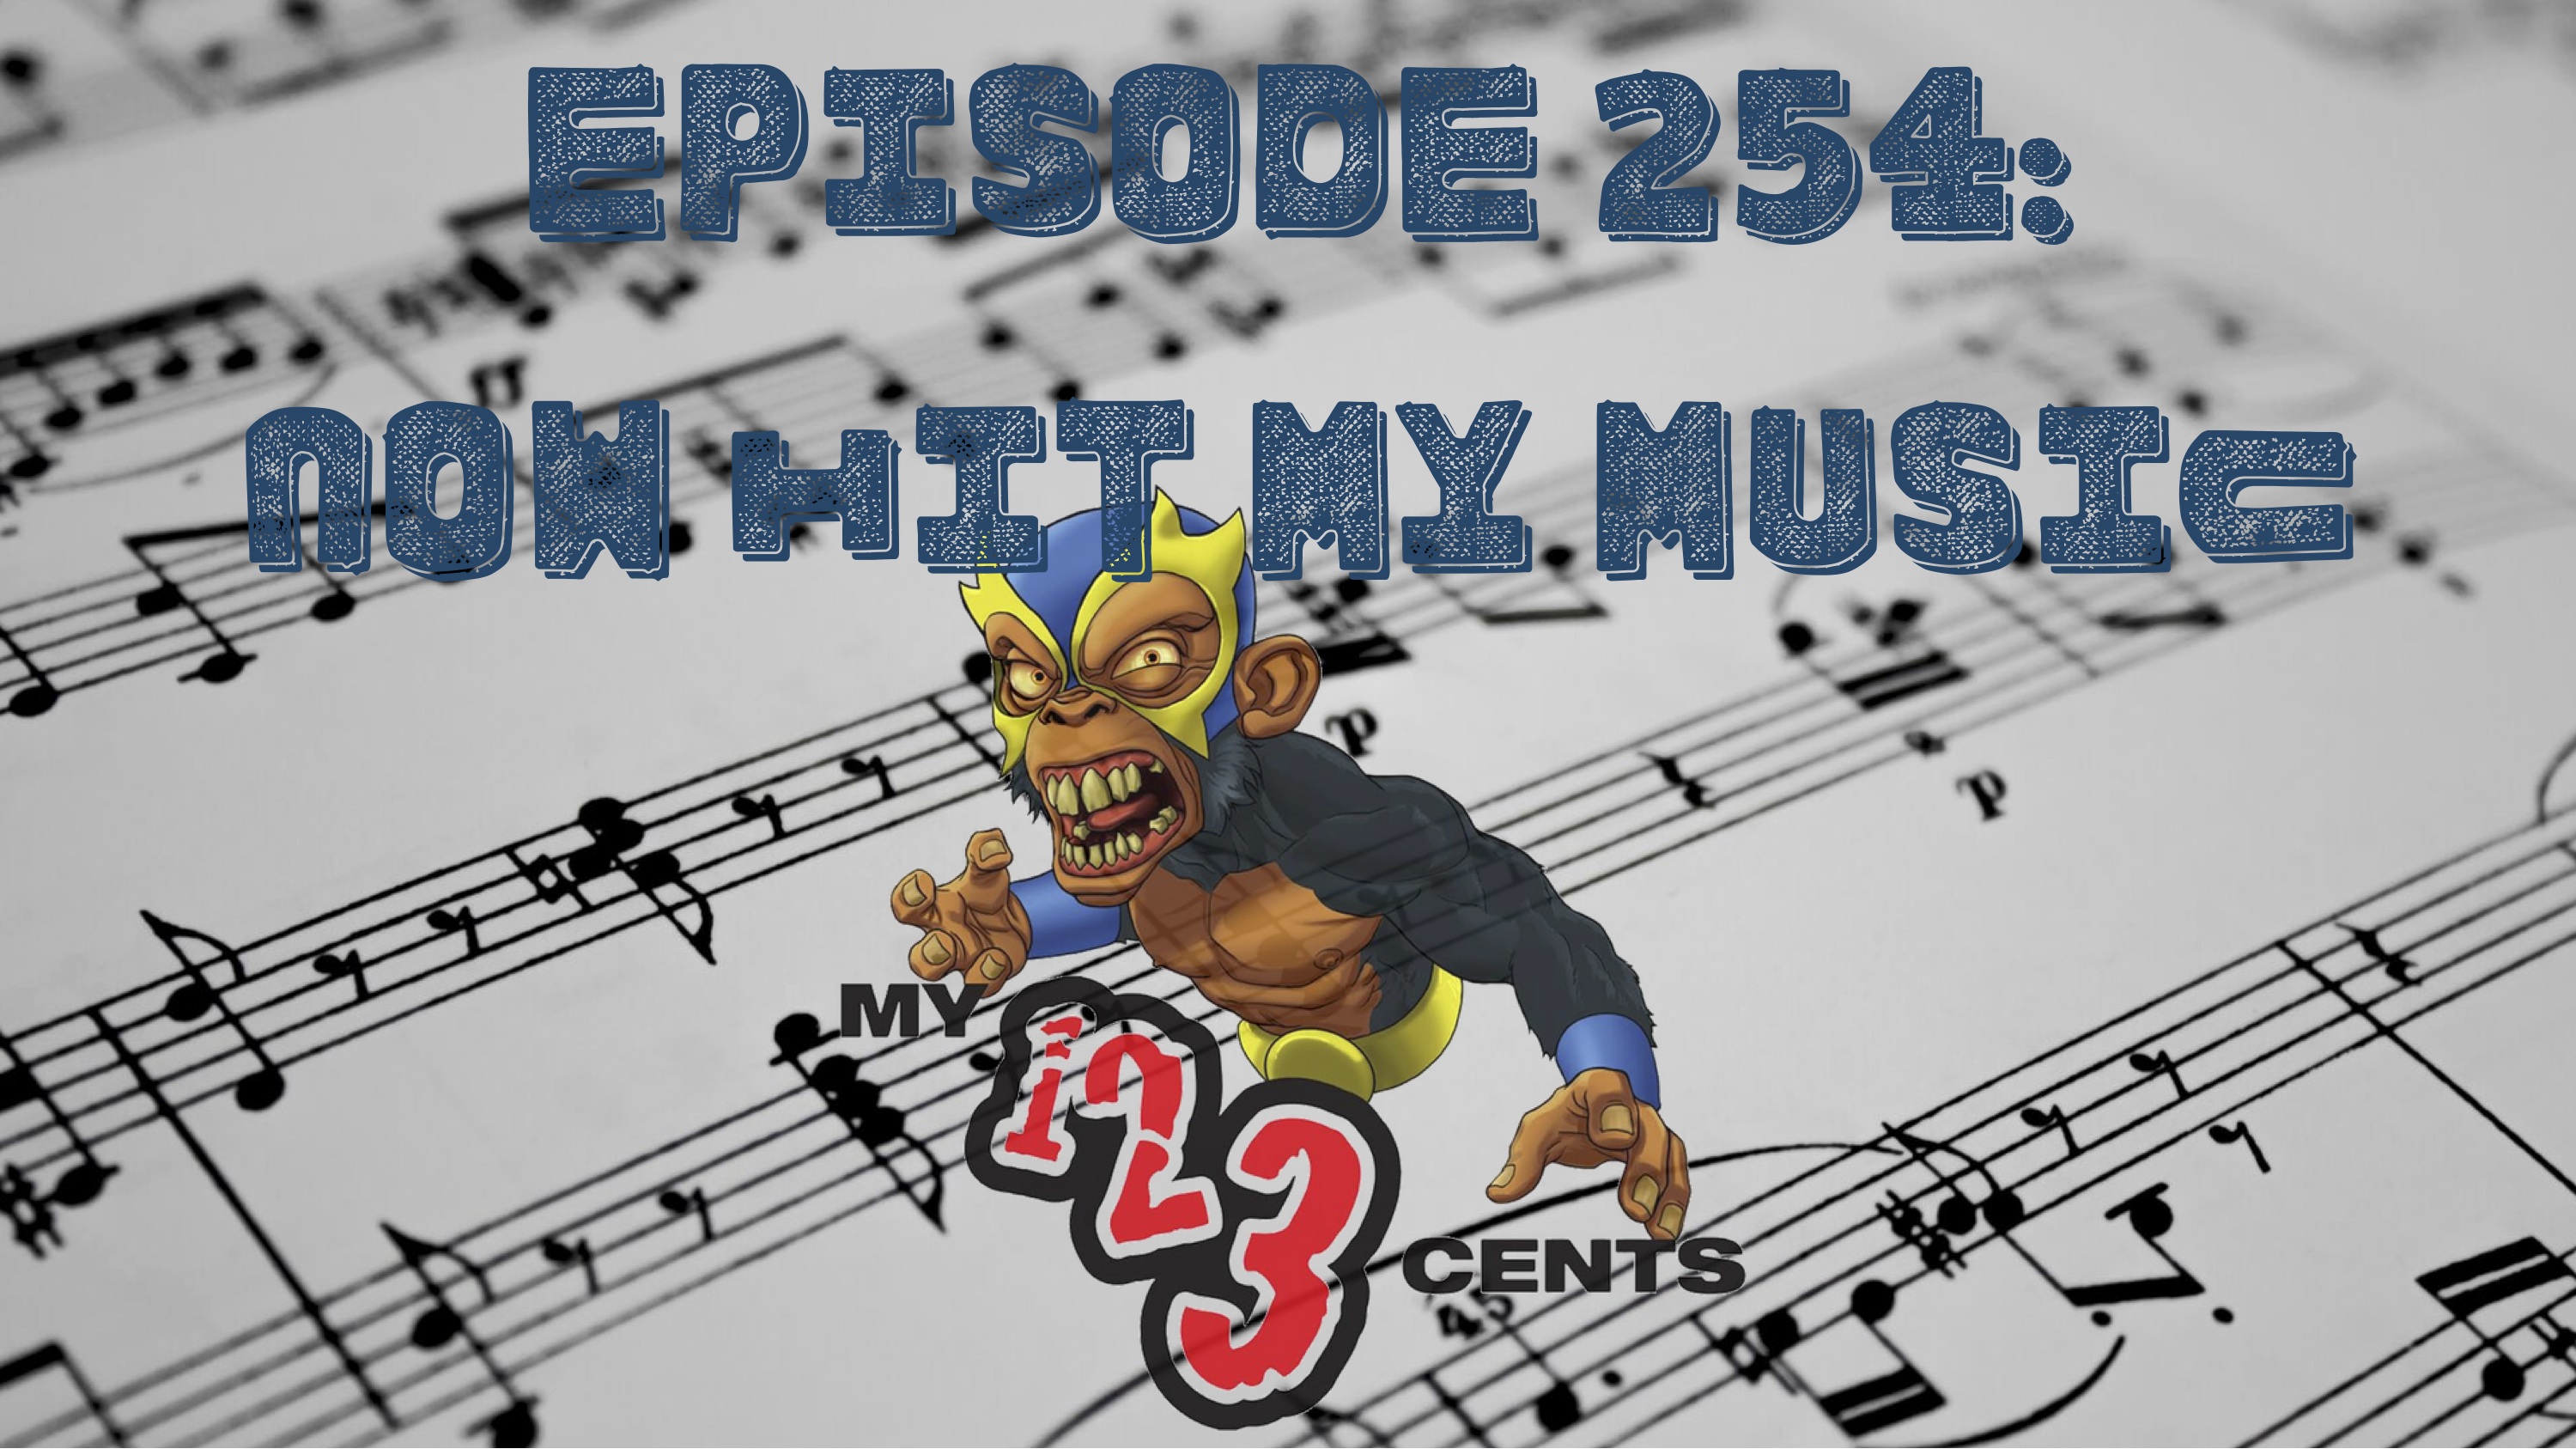 My 1-2-3 Cents Episode 254: Now Hit My Music